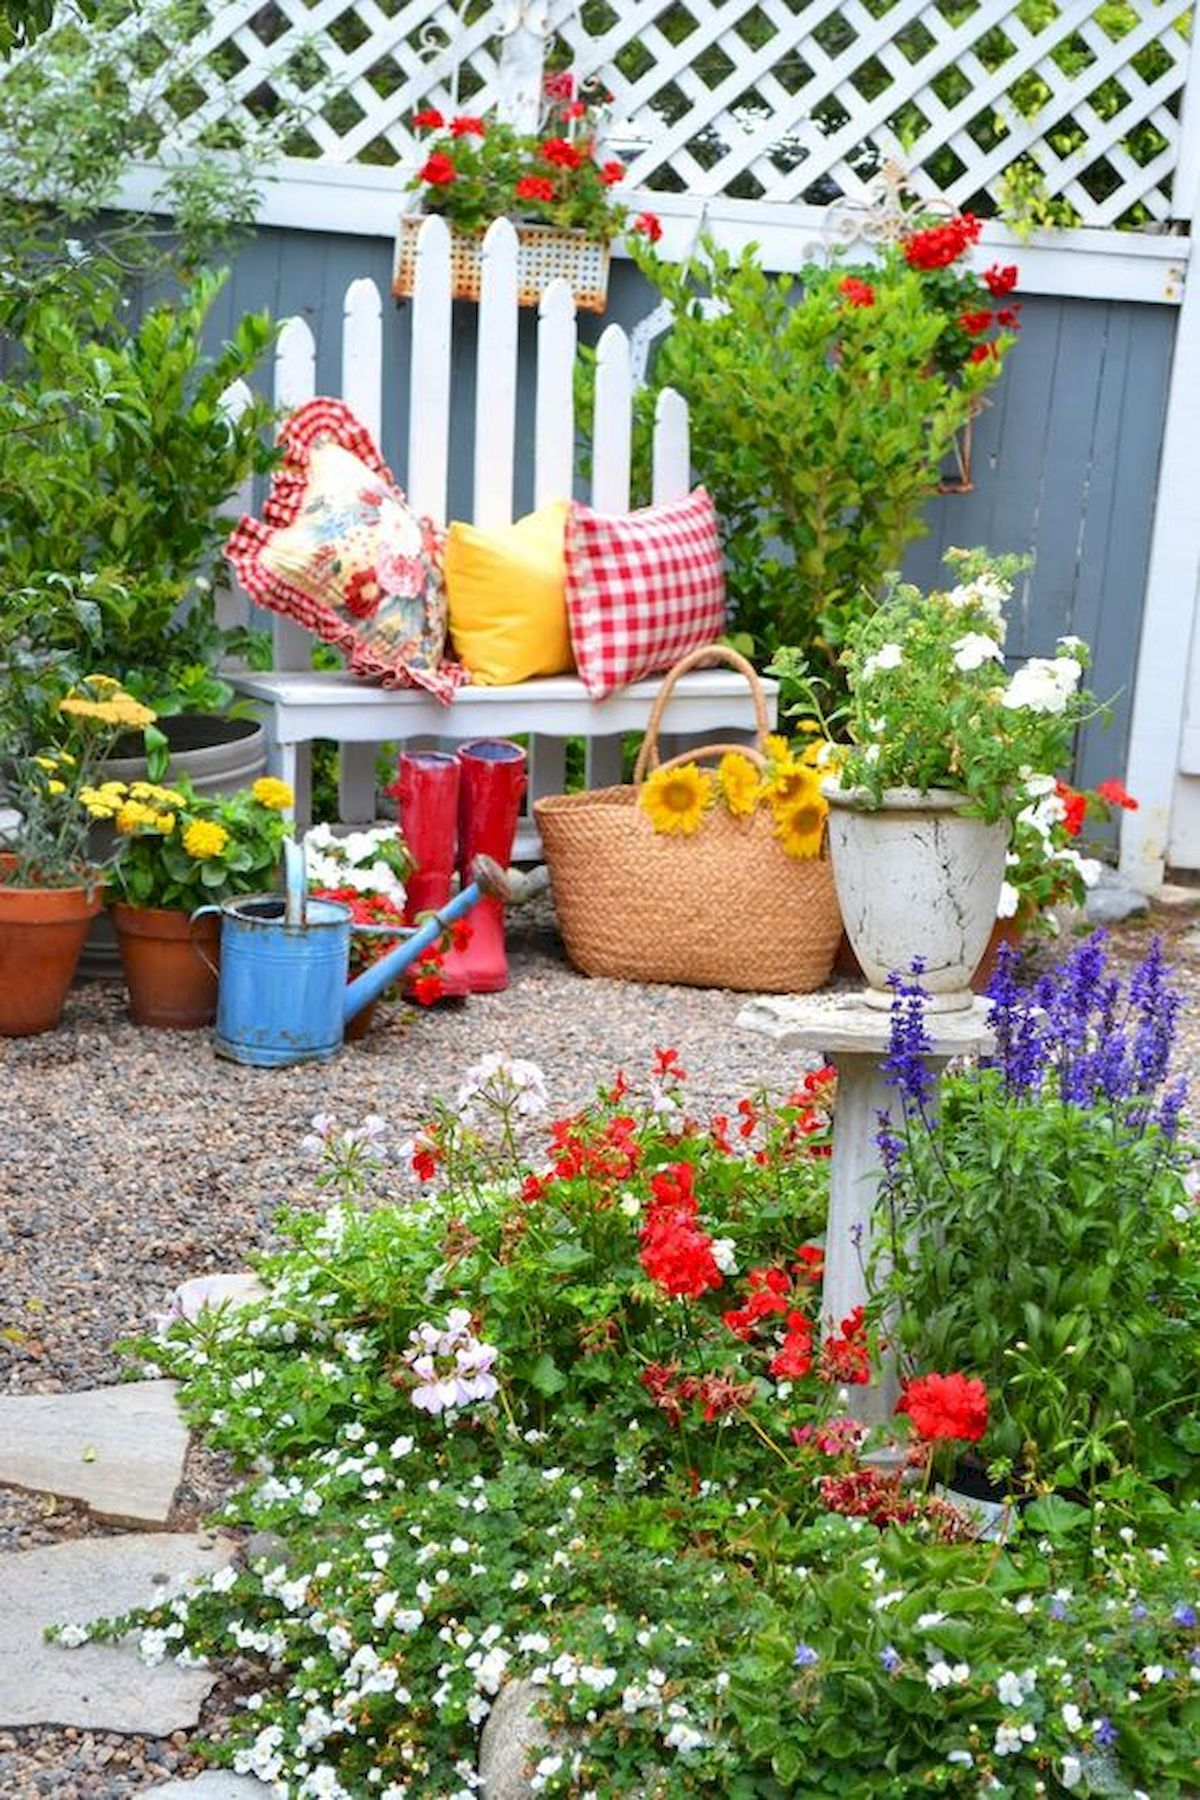 Nice 33 Awesome Diy Painted Garden Decoration Ideas For A Colorful Yard Https Coachdecor Com 33 Awes Summer Garden Garden Decor Low Maintenance Garden Design